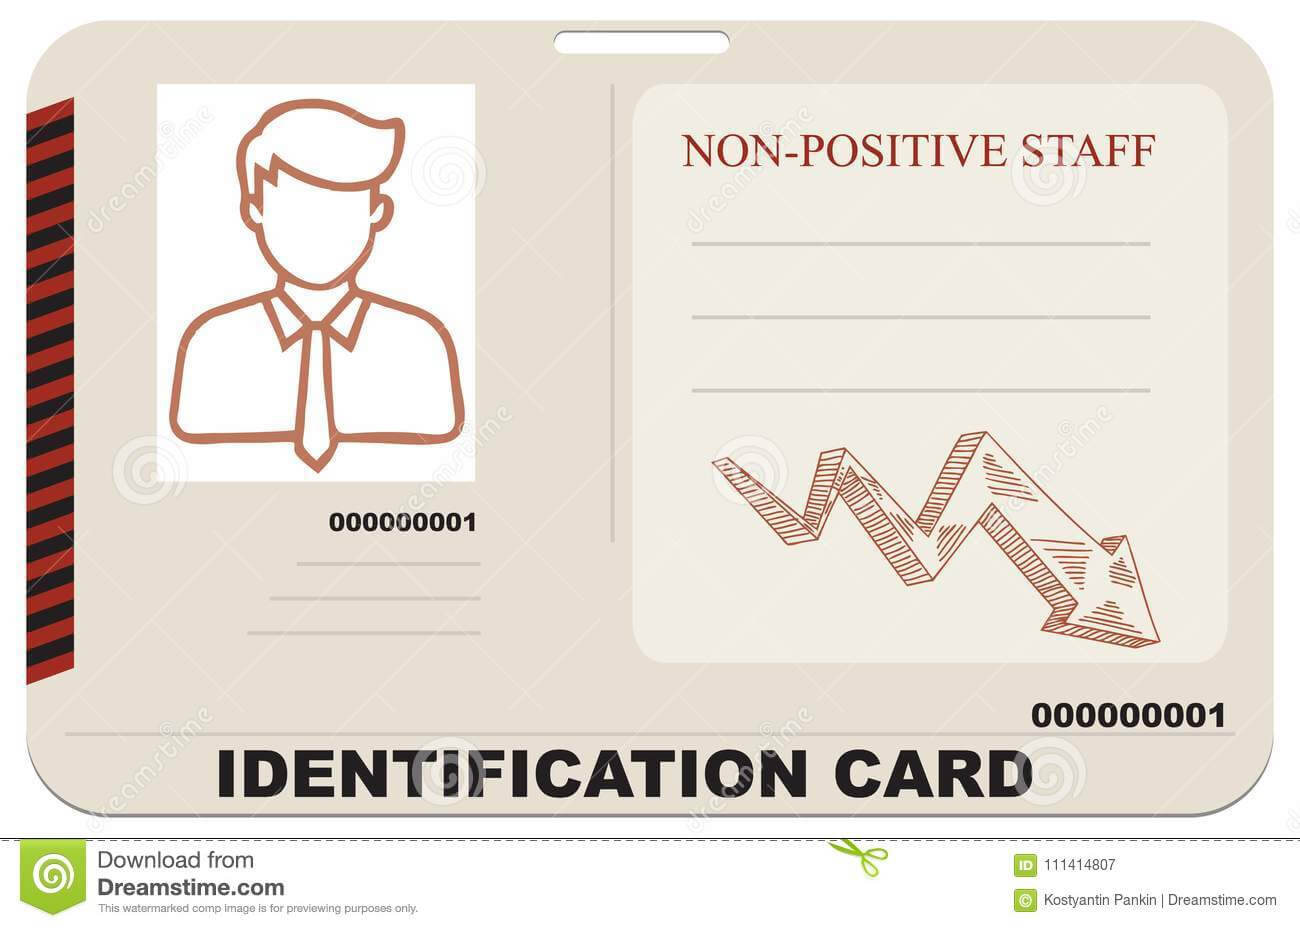 Identification Card For Non-Positive Staff Stock Vector pertaining to Mi6 Id Card Template